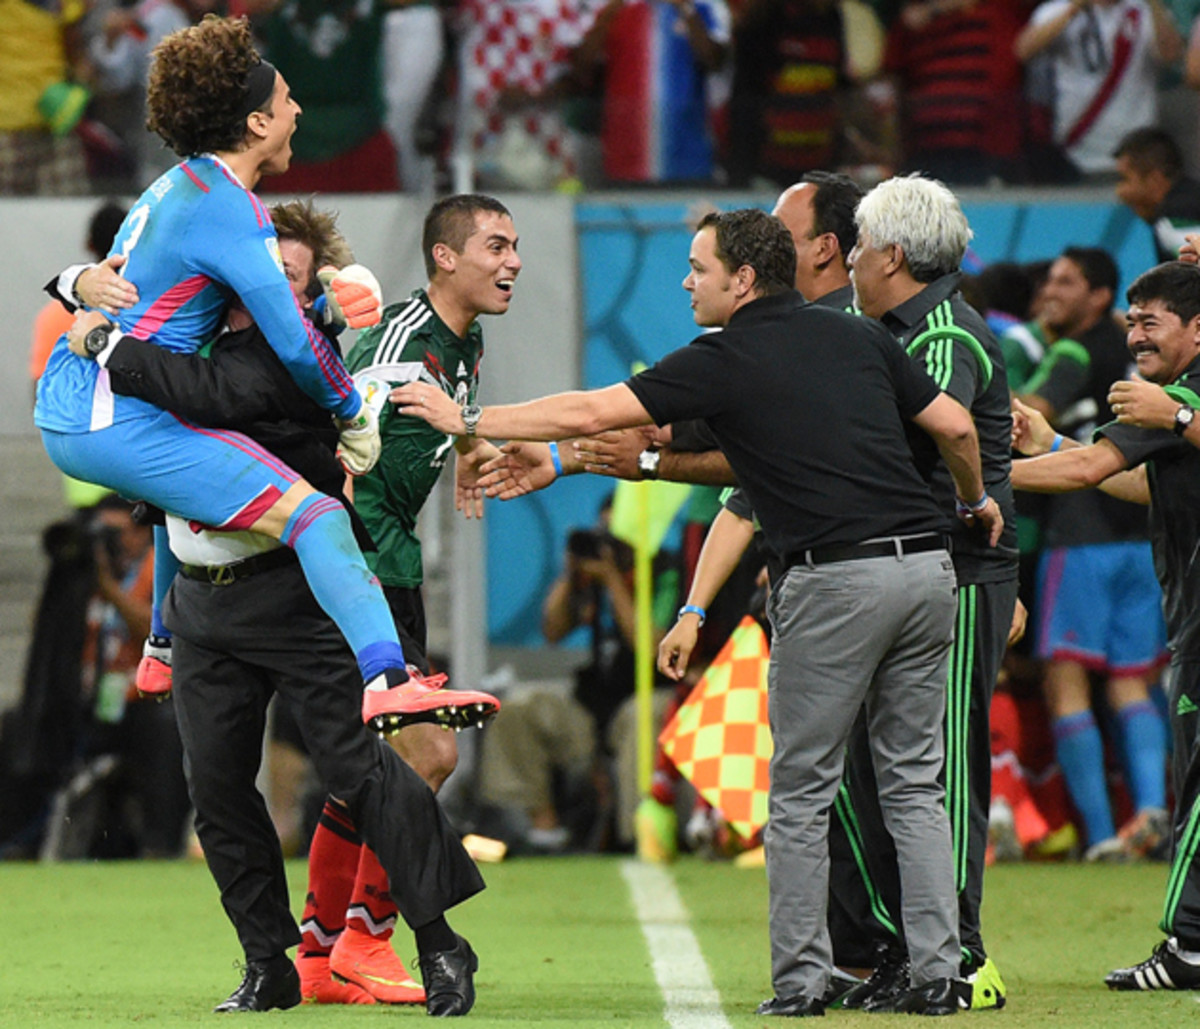 Miguel Herrera, second left, hoists goalkeeper Guillermo Ochoa in celebrating Mexico's 3-1 win over Croatia to seal El Tri's place in the round of 16.